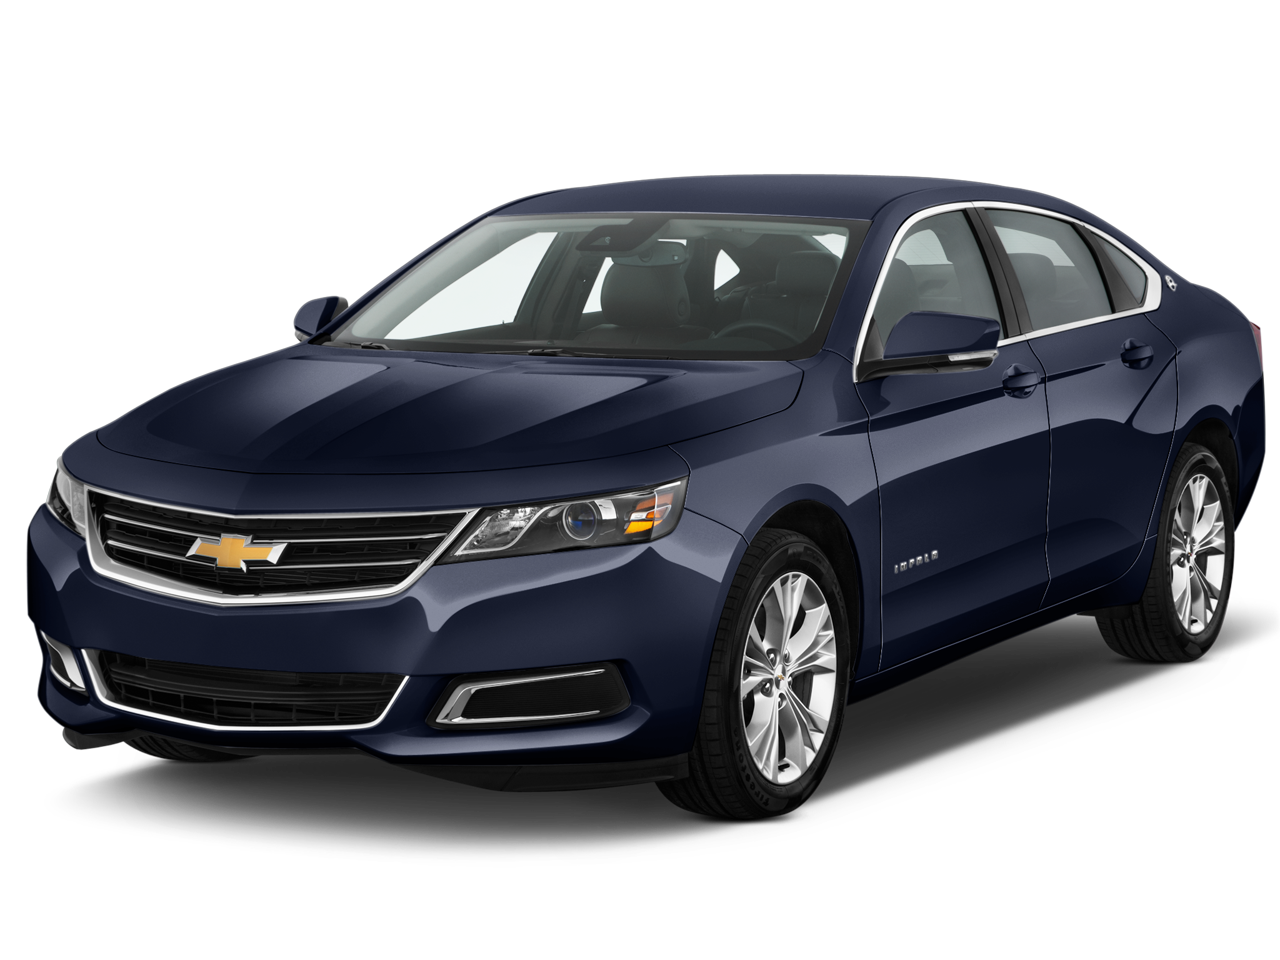 new impala ls between 21 mpg and 25 mpg for sale kingdom chevy. Black Bedroom Furniture Sets. Home Design Ideas